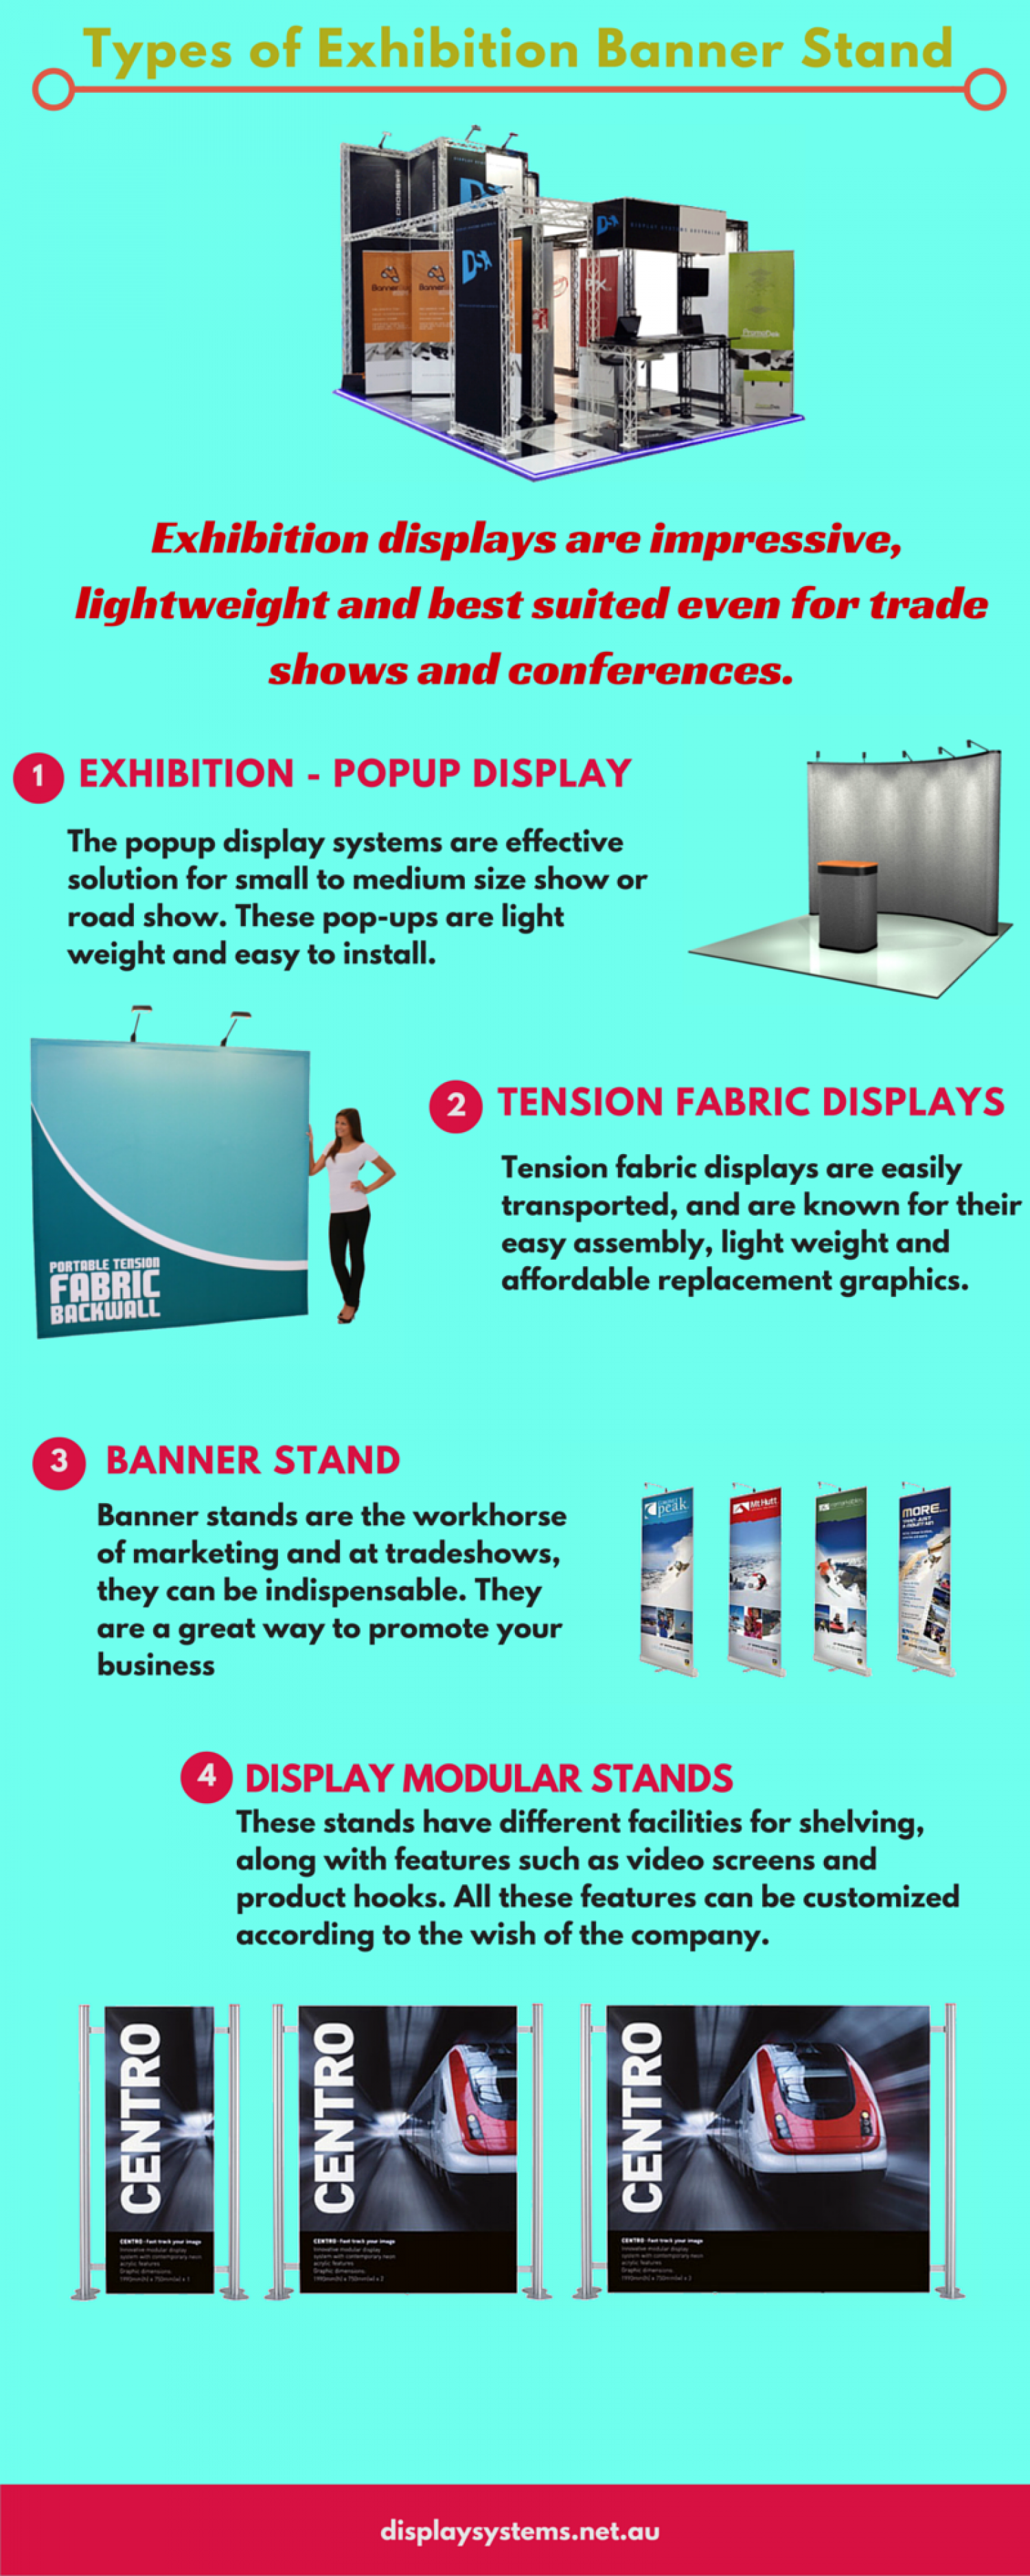 different types of exhibition banner stand visual ly